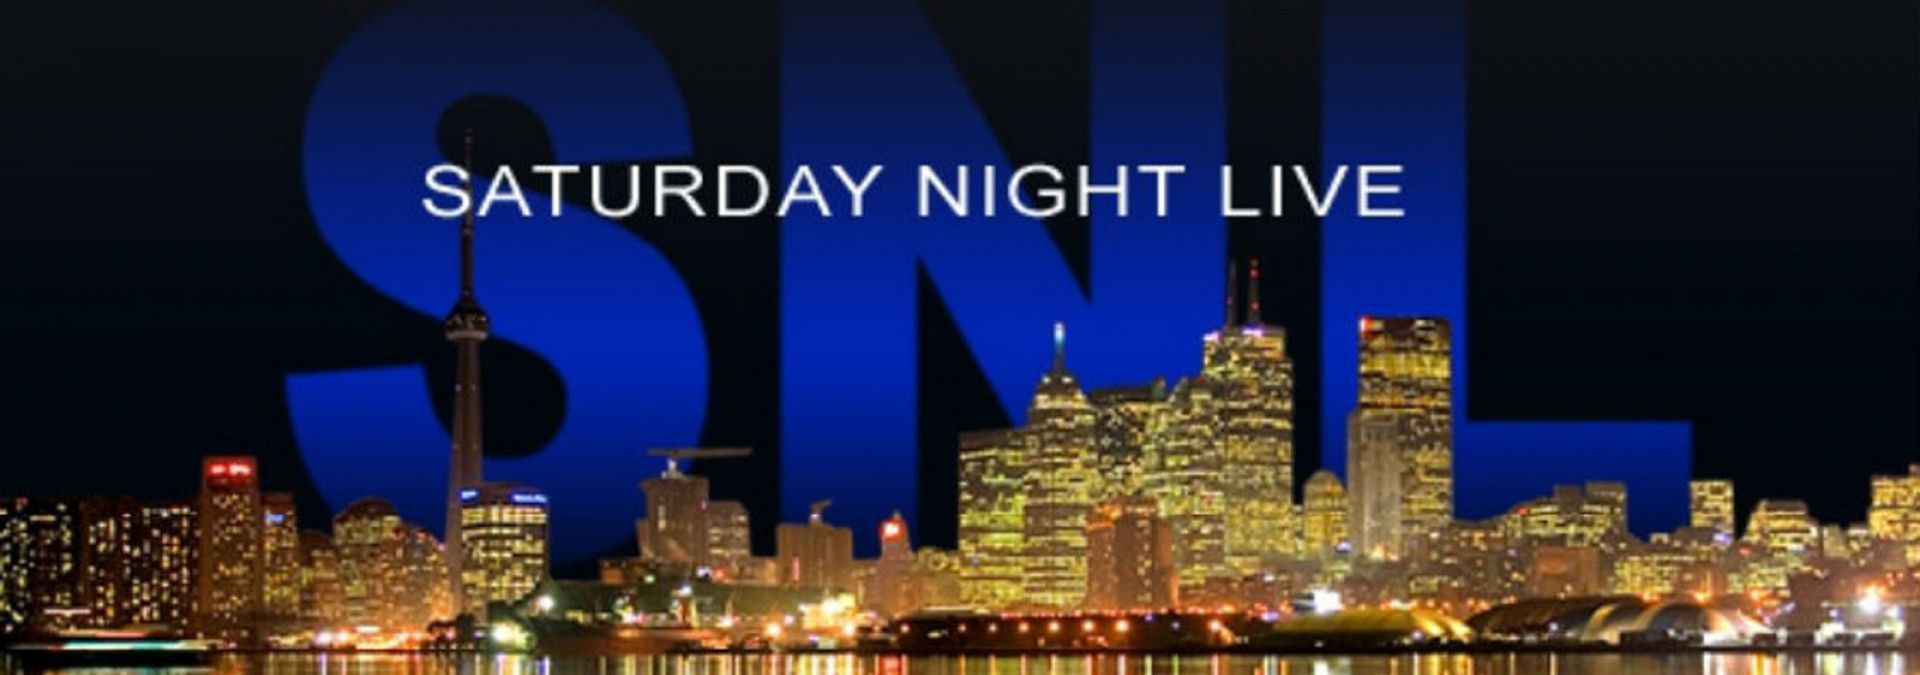 Live from the BBC Saturday night live, Live comedy